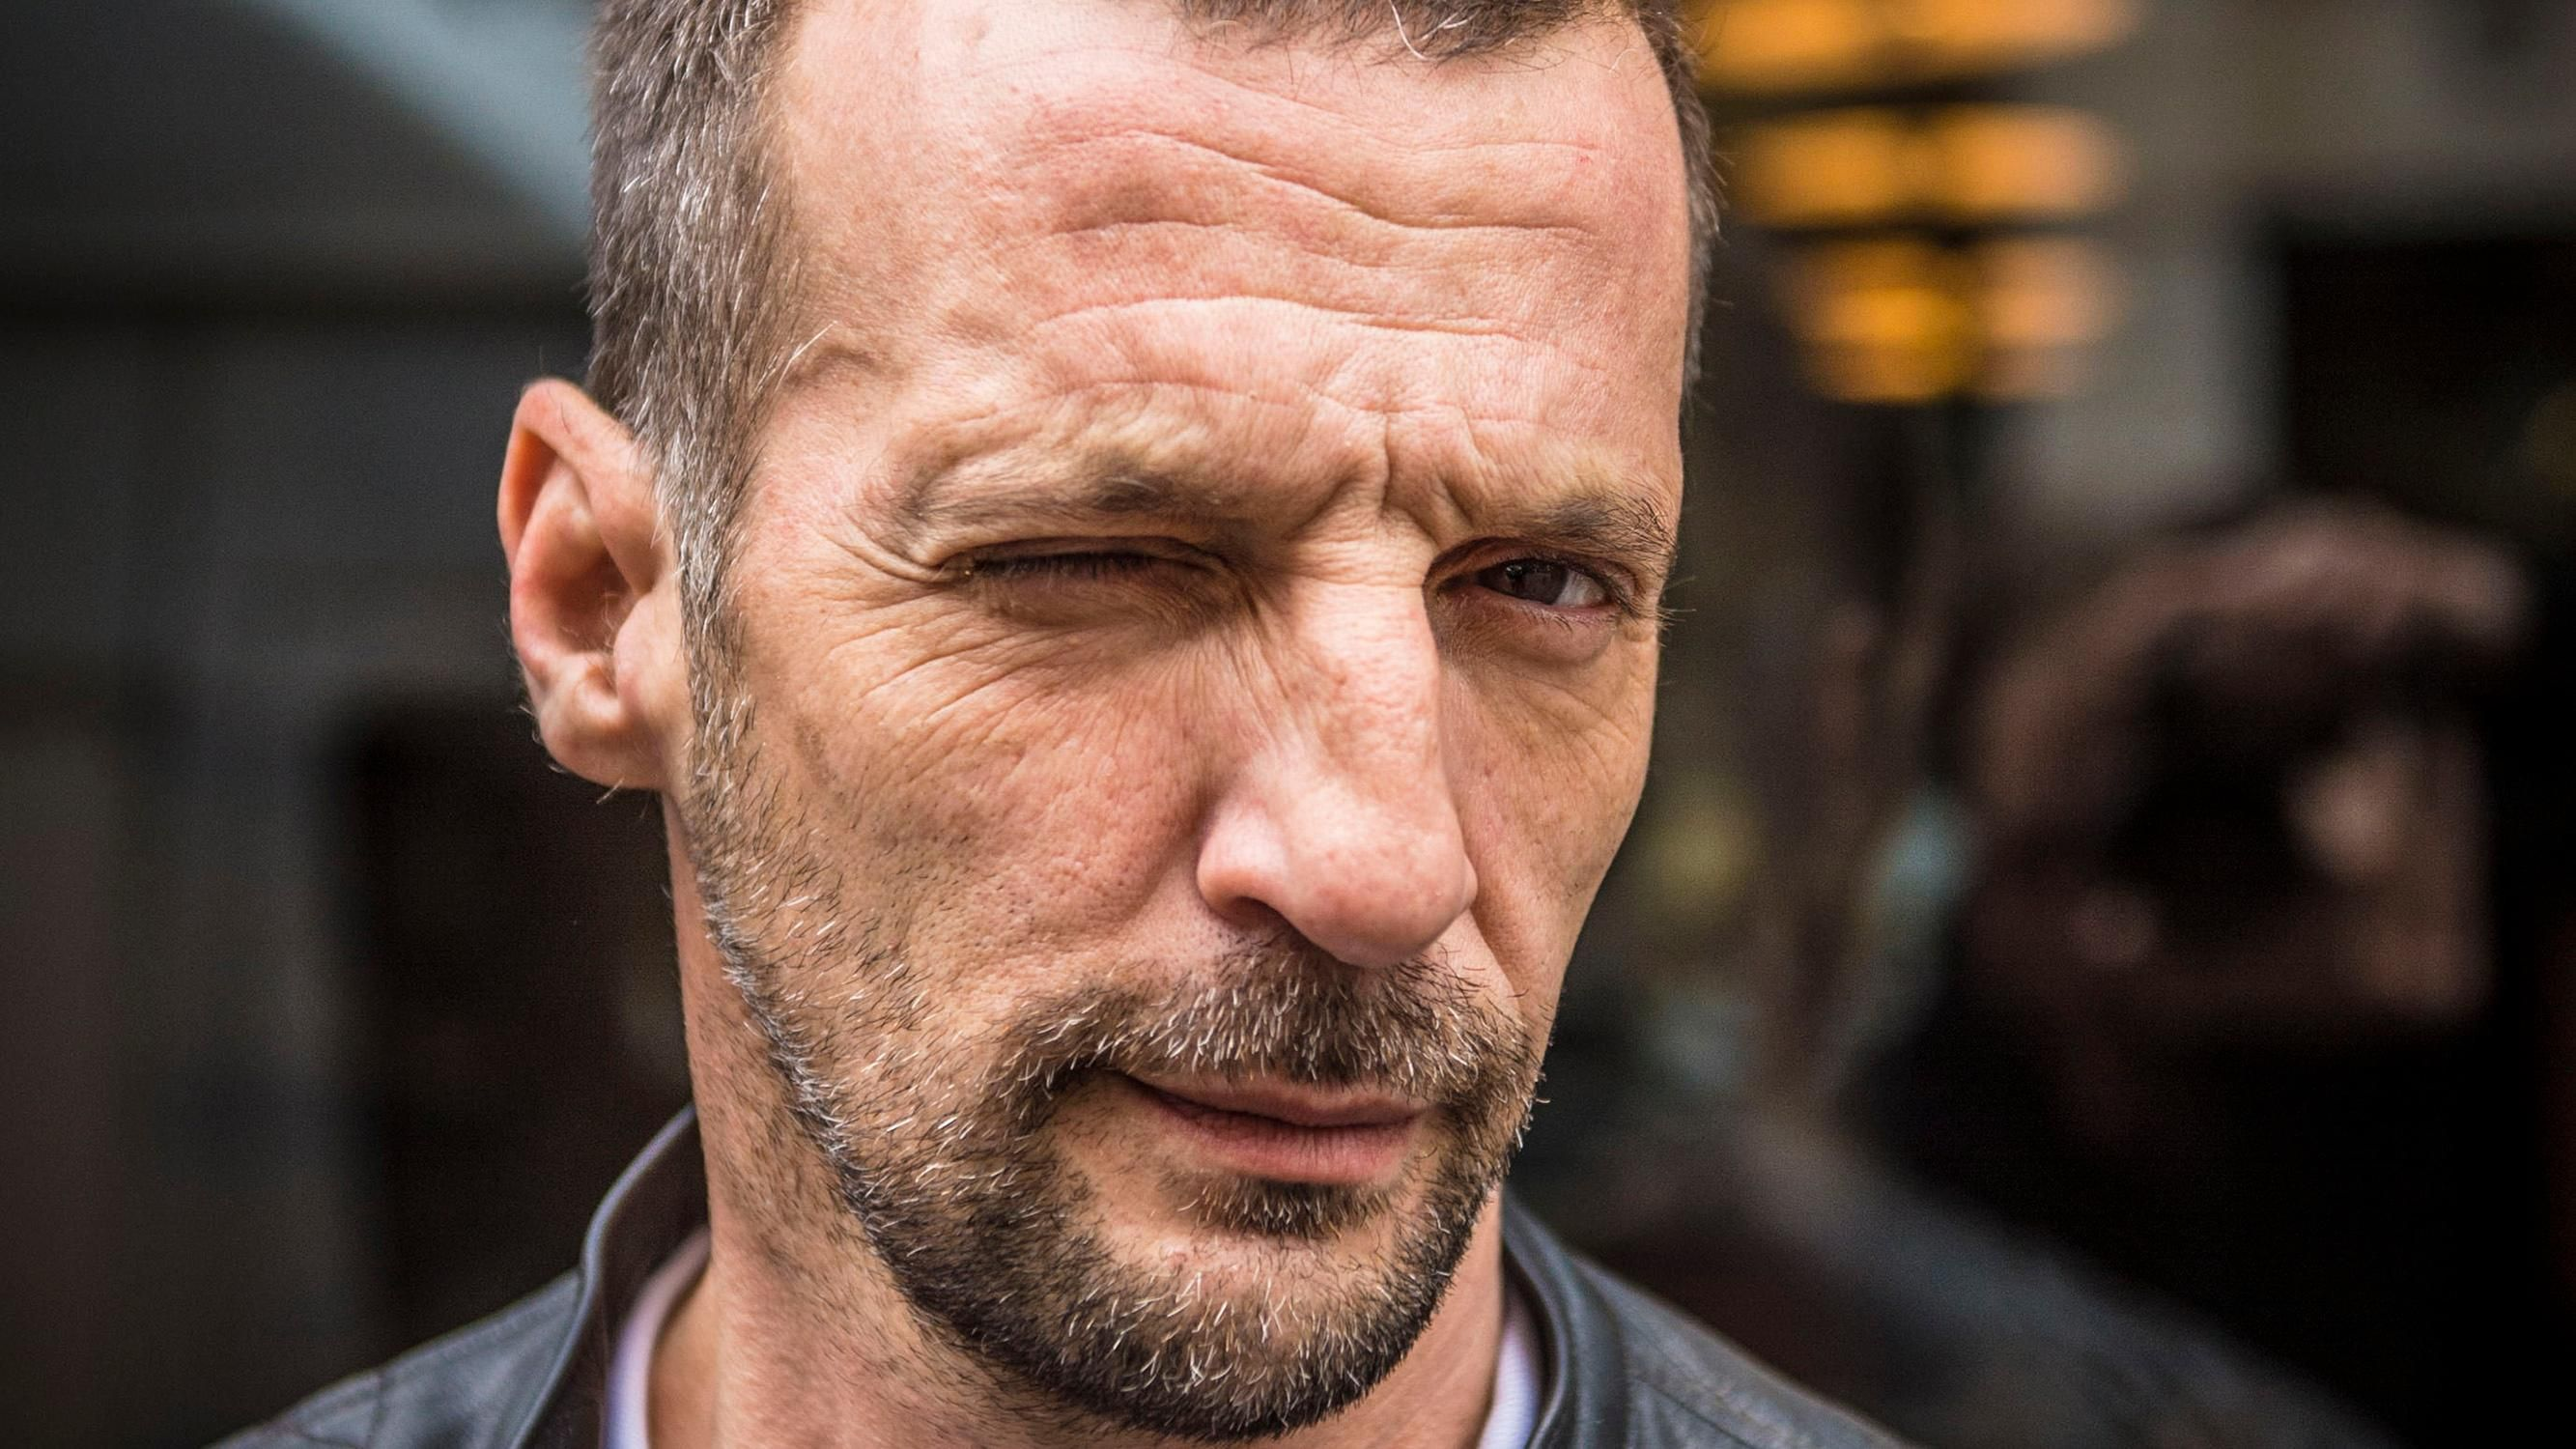 Mathieu Kassovitz interview: from Amélie to Haneke's Happy End | Amelie, Interview, Actor